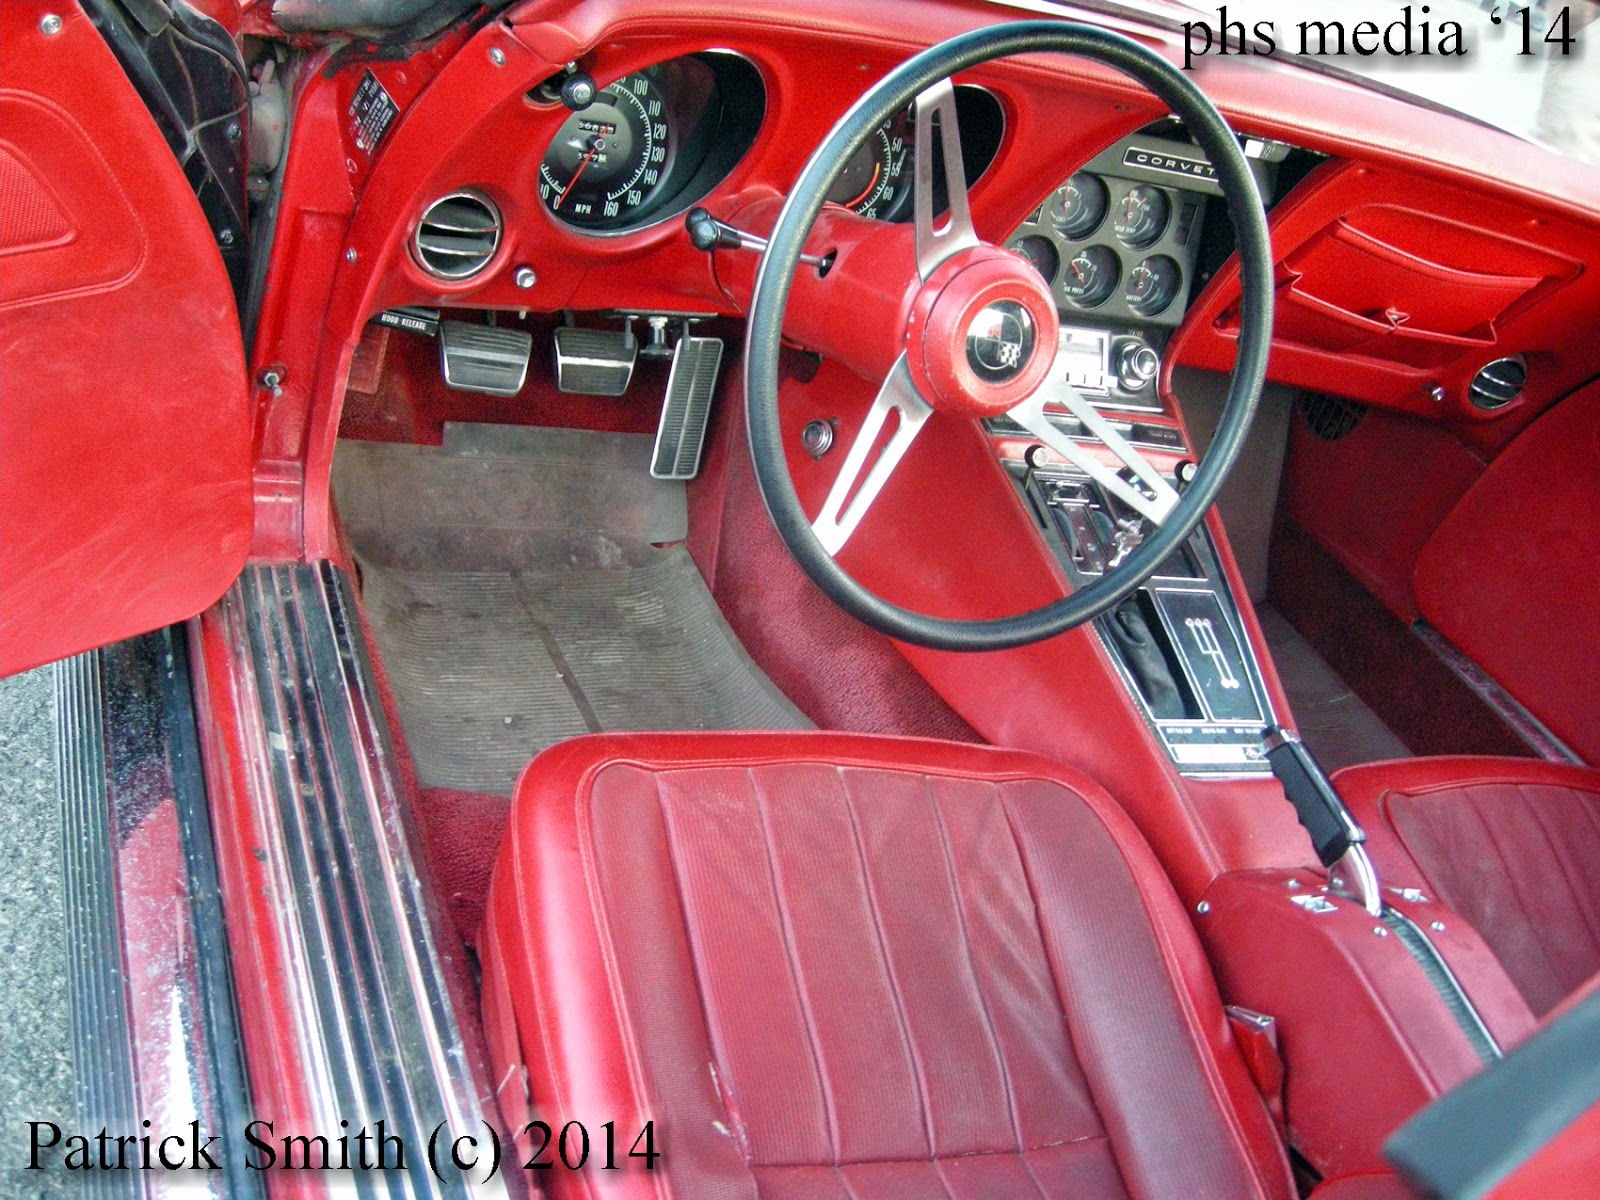 As Found Series 1971 Corvette 454 Ls5 Four Speed Phscollectorcarworld 1960 Studebaker Lark Wiring Diagram Factory Red On Interior Car Options Listed Are Am Fm Stereo Tilt Wheel Rear Defrosterpower Windows Power Steering And Disc Brakes